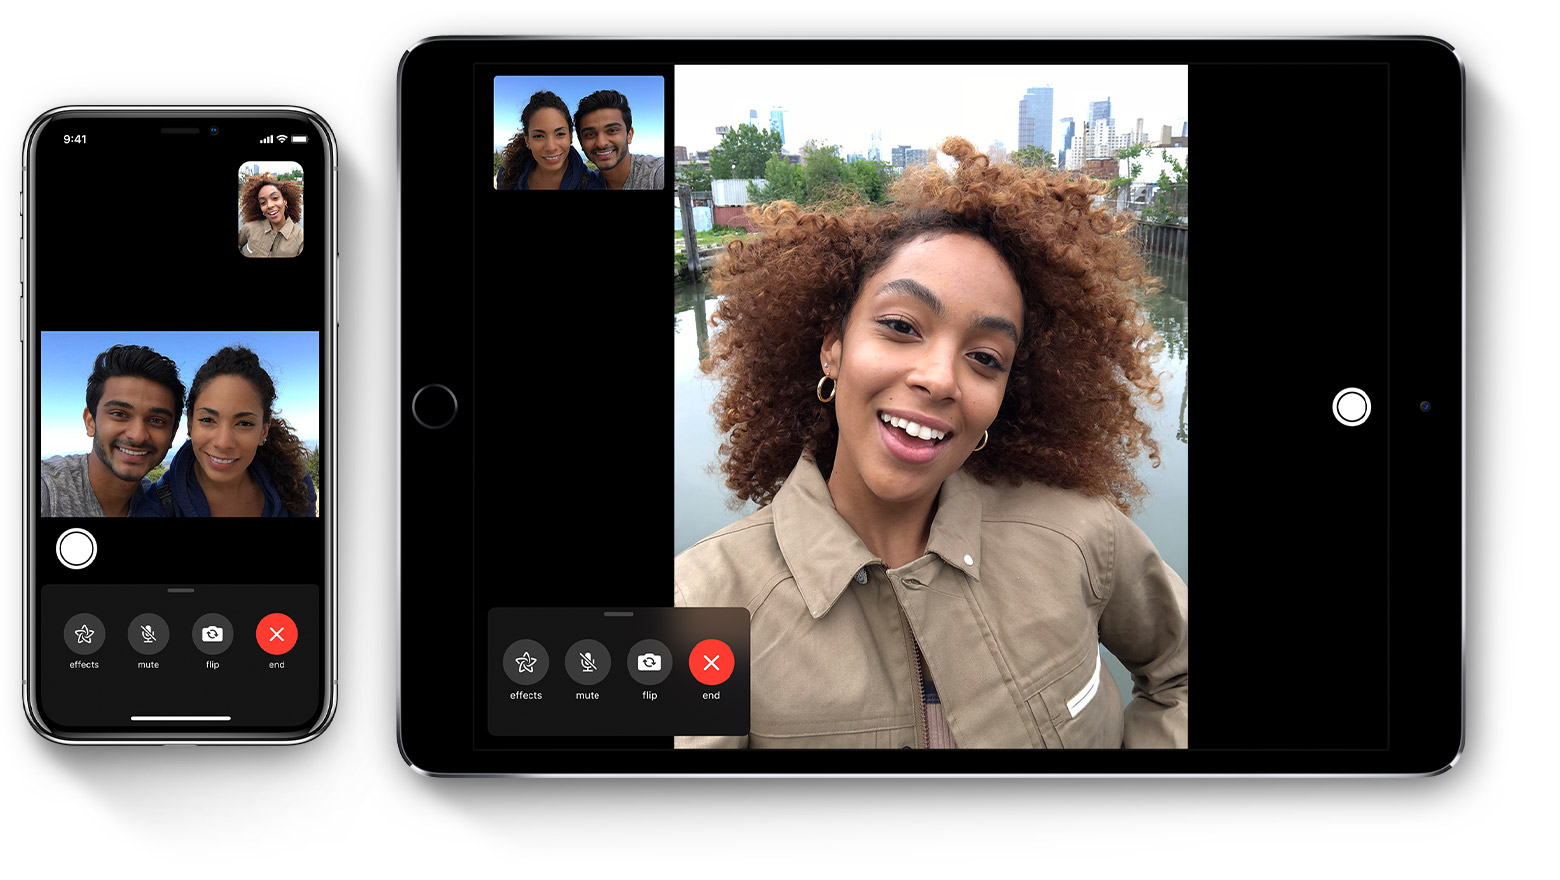 How to Make a FaceTime Call with Your iPhone